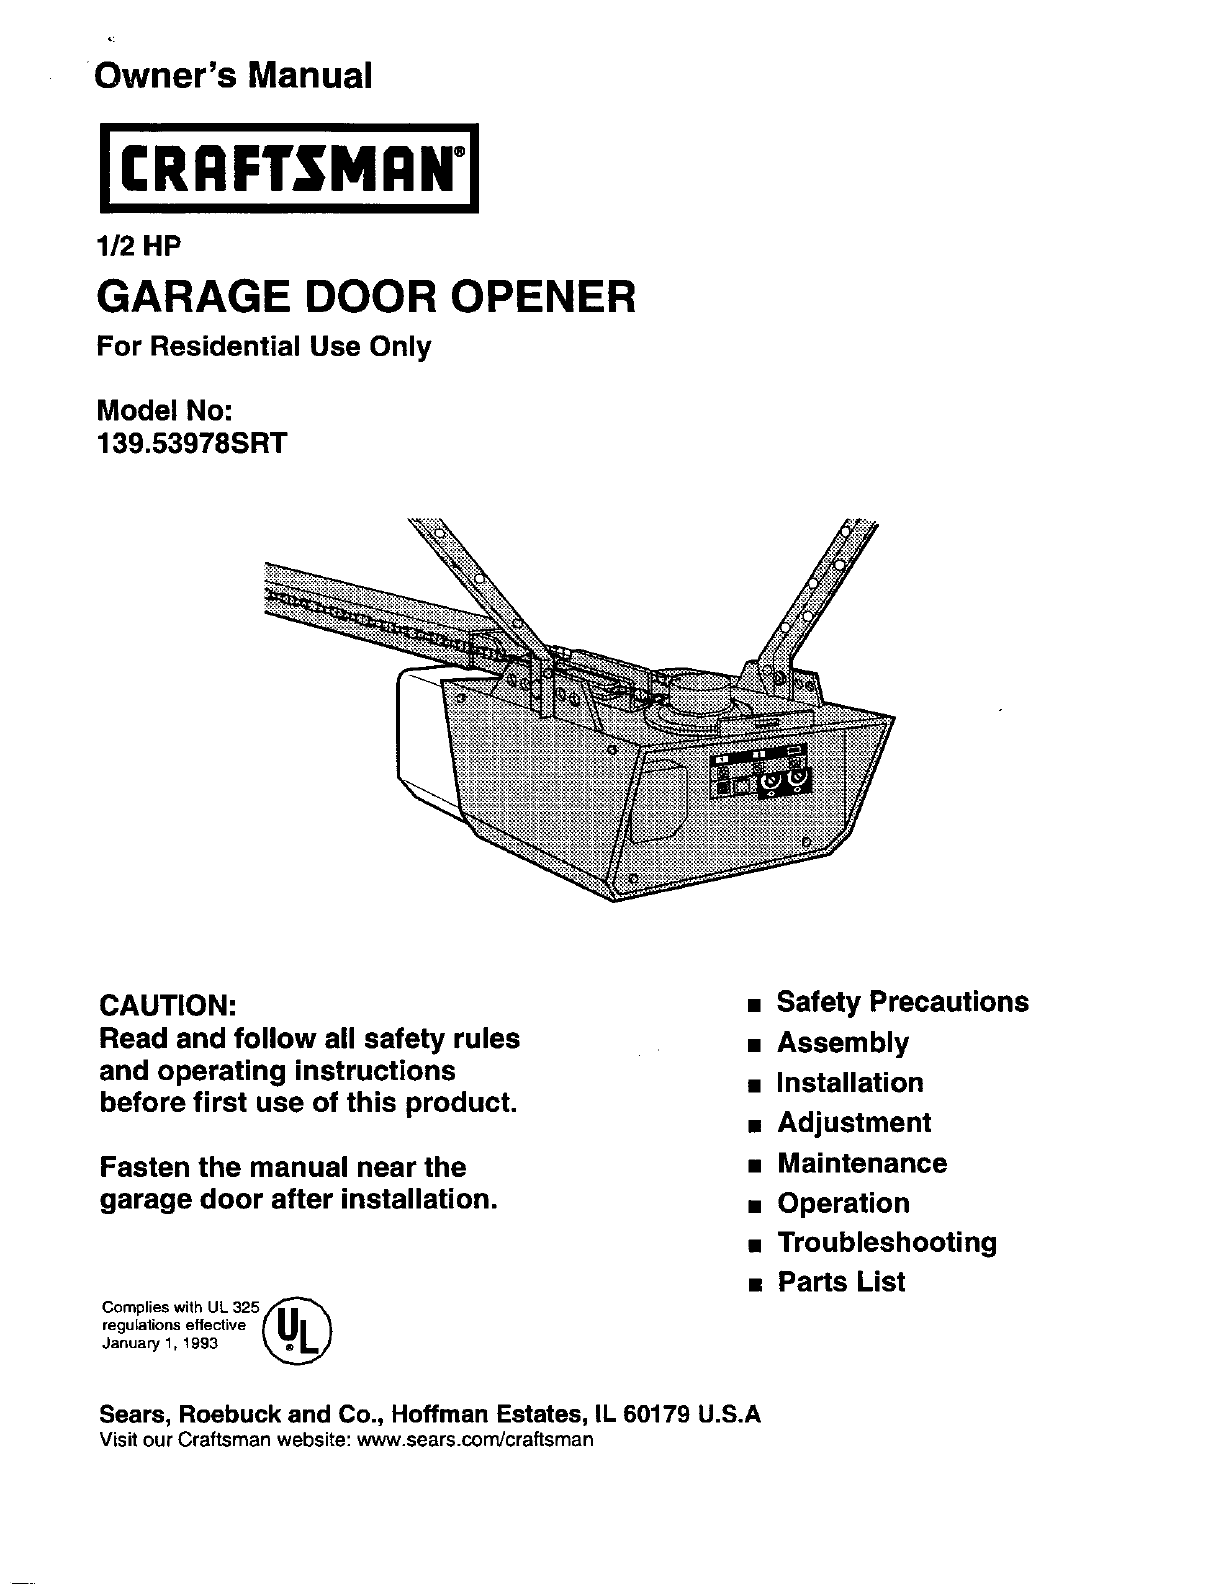 0f05b938 d0cb 4872 aeee 96ef63eab4f3 bg1 craftsman garage door opener 139 53978srt user guide craftsman garage door wiring diagram at reclaimingppi.co